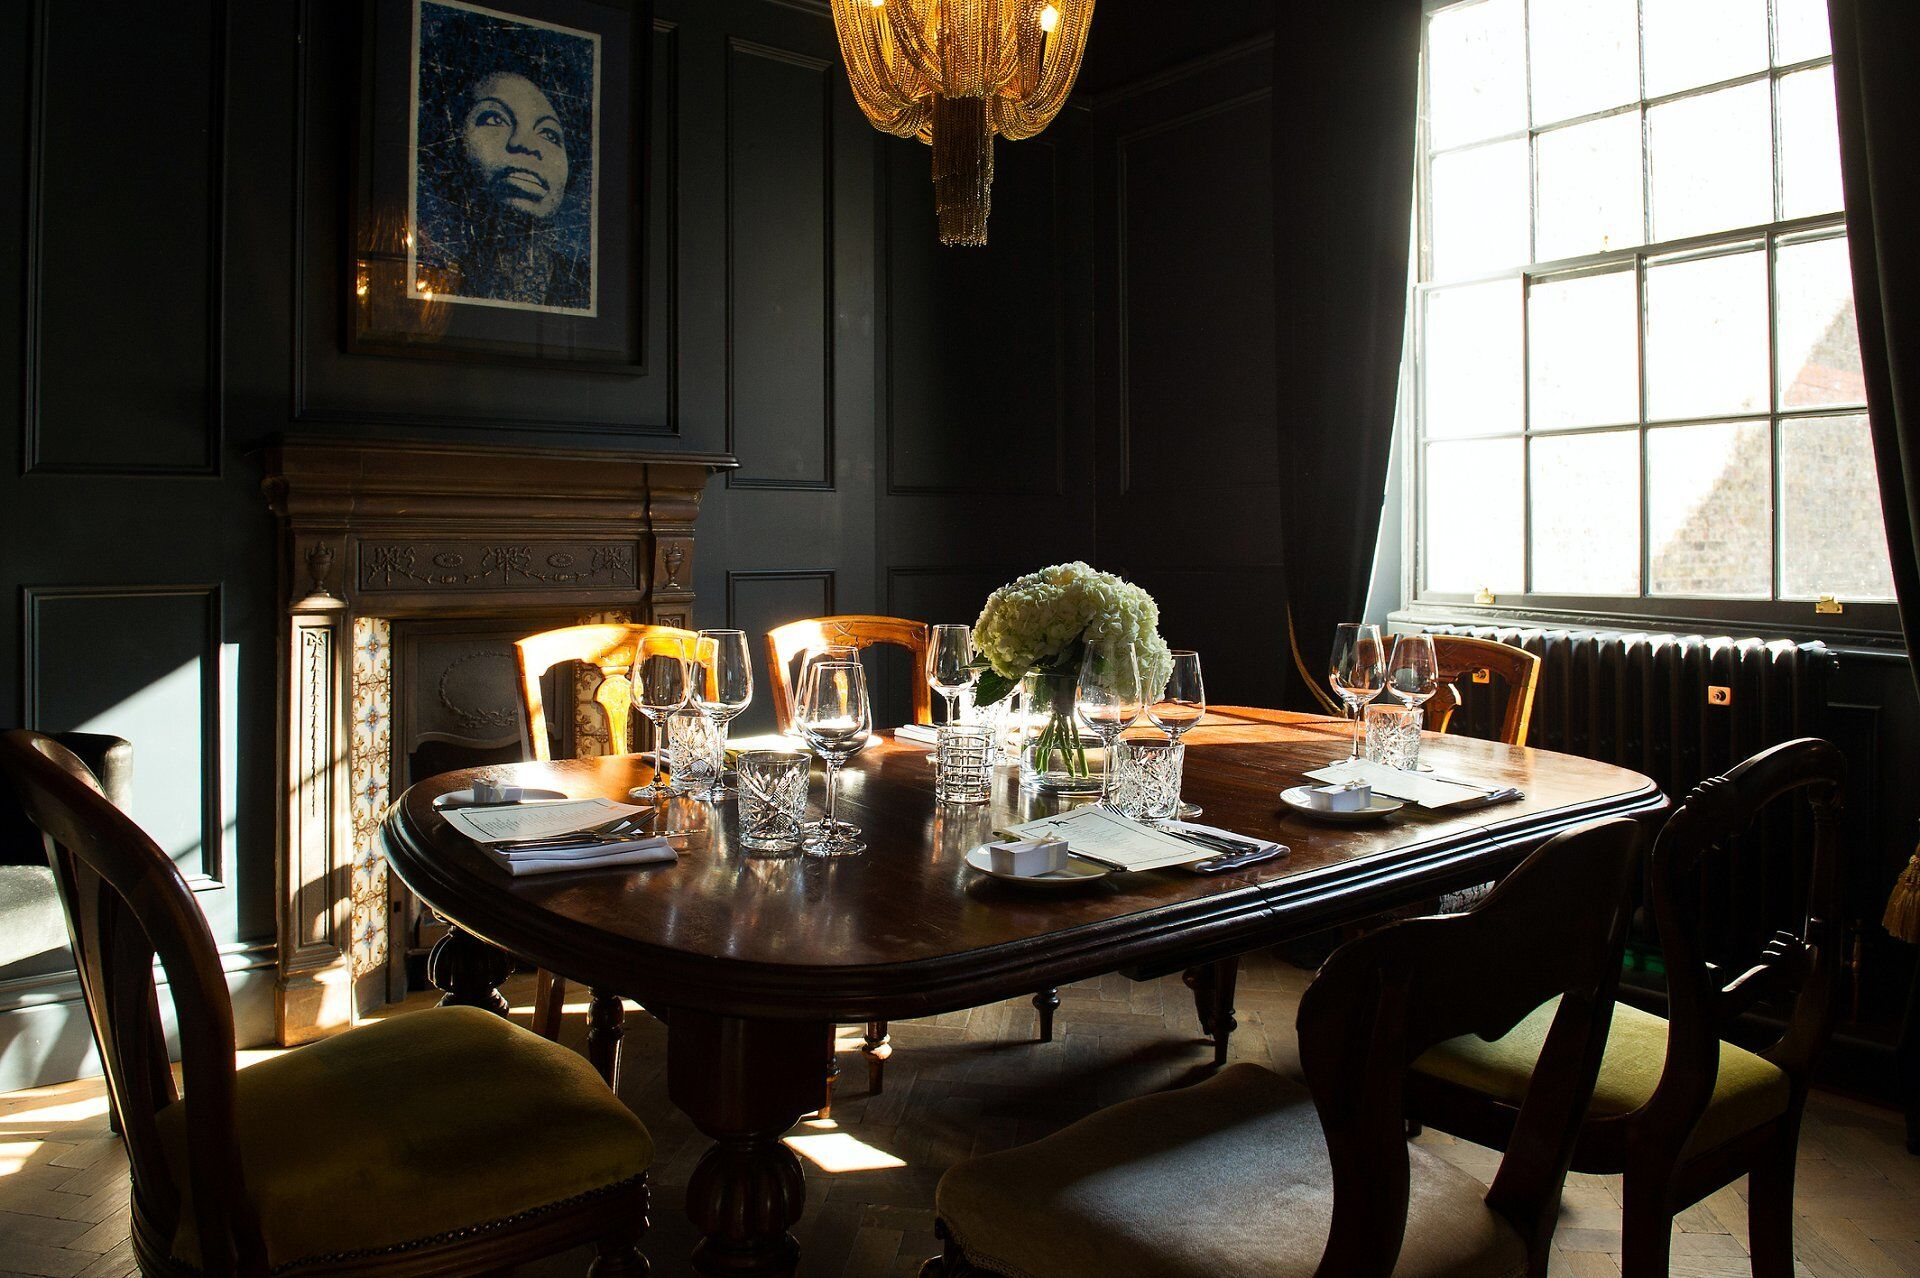 the black room the harcourt wedding photographer emma duggan and a table set for wedding breakfast and sun shining in through the window